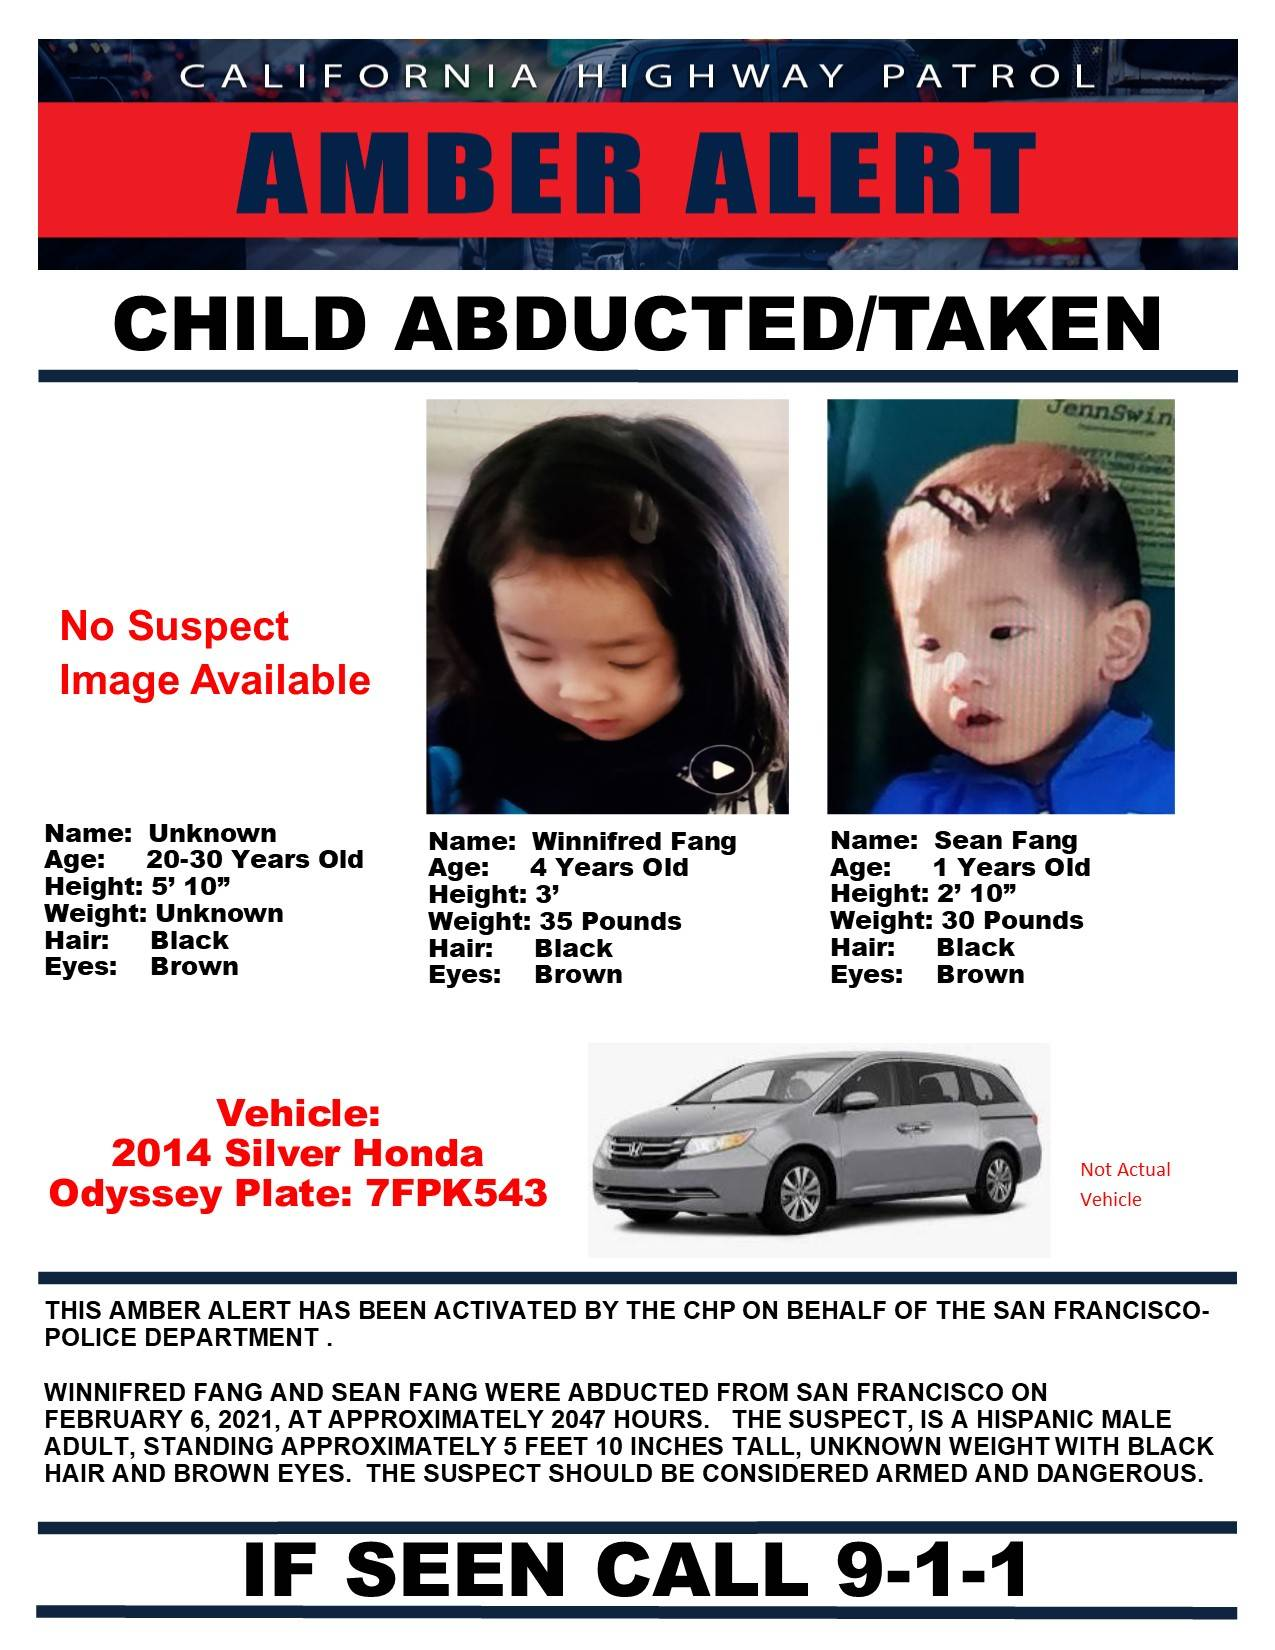 An Amber Alert was issued after Sean and Winnifred Fang were abducted while sitting in their father's minivan Saturday night. The two were later safely recovered. (Courtesy photo)